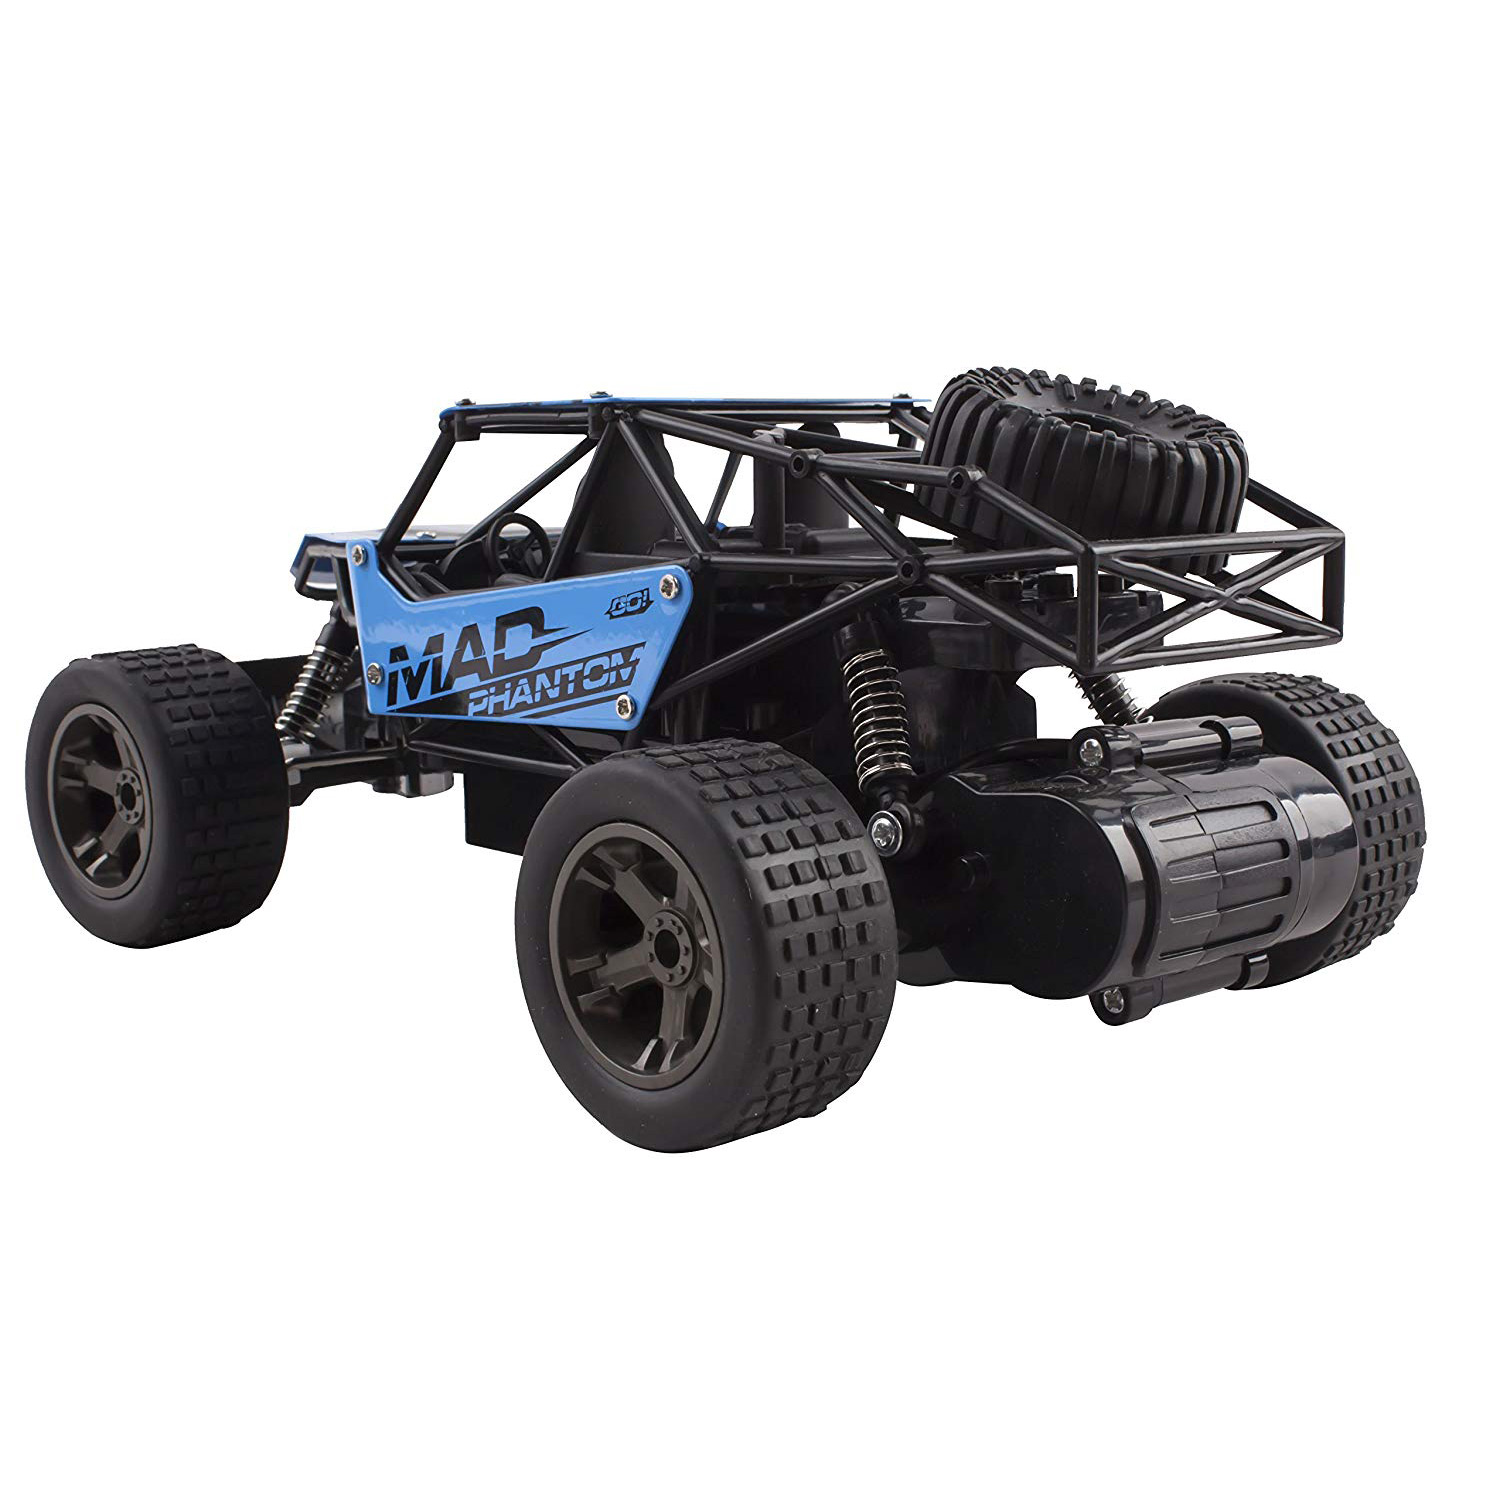 Remote control RC truck off road